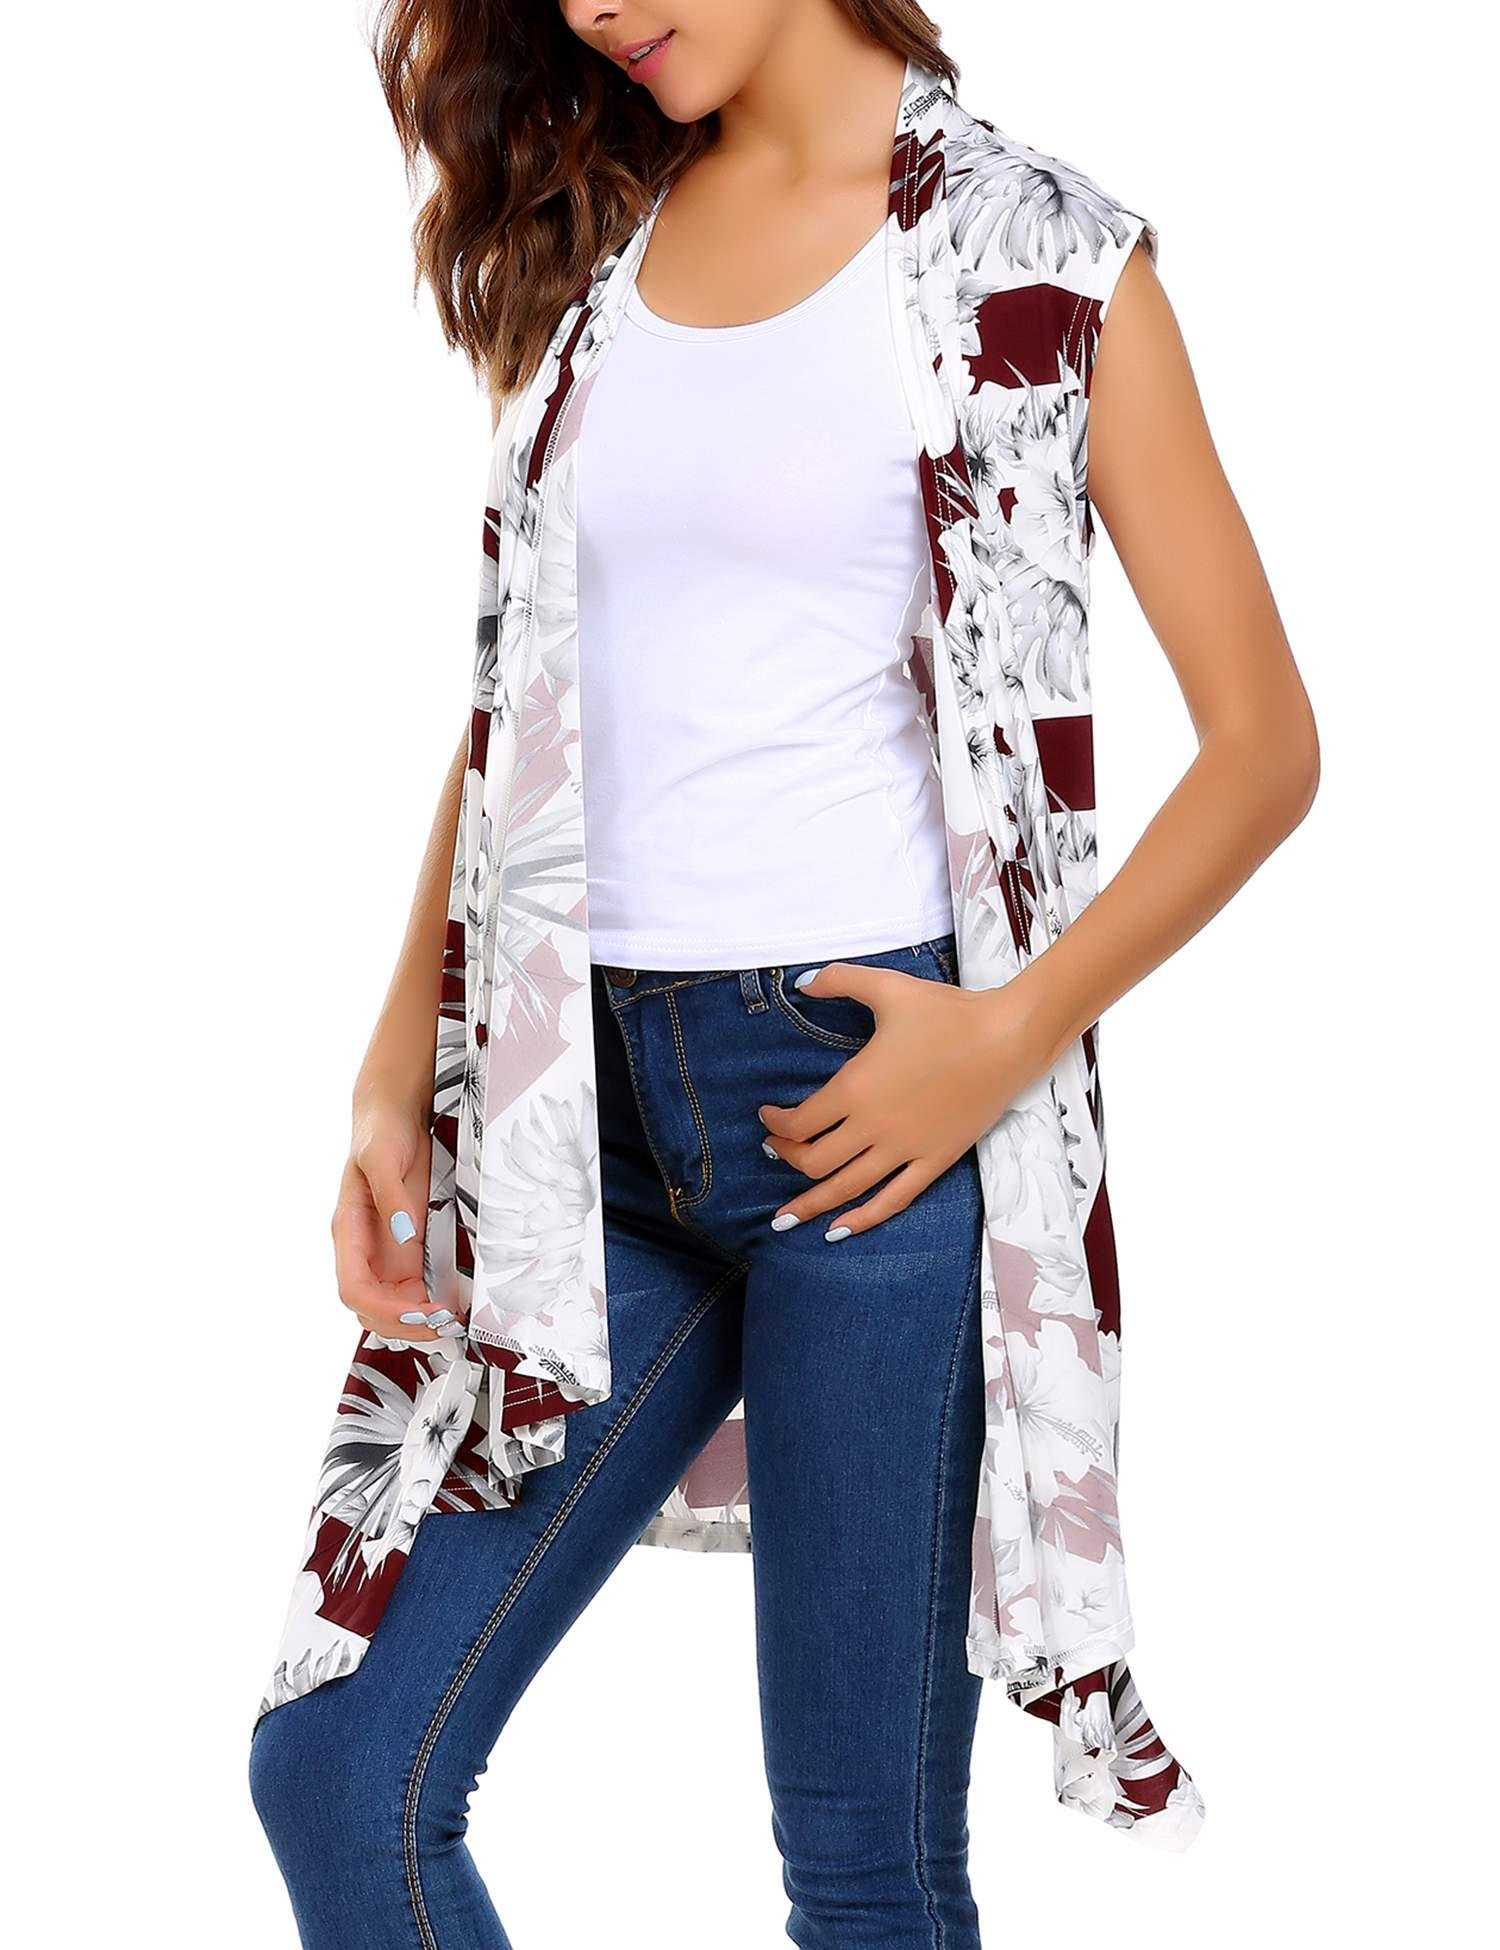 ELESOL Women' Floral Sleeveless Cardigan Wine Red Large